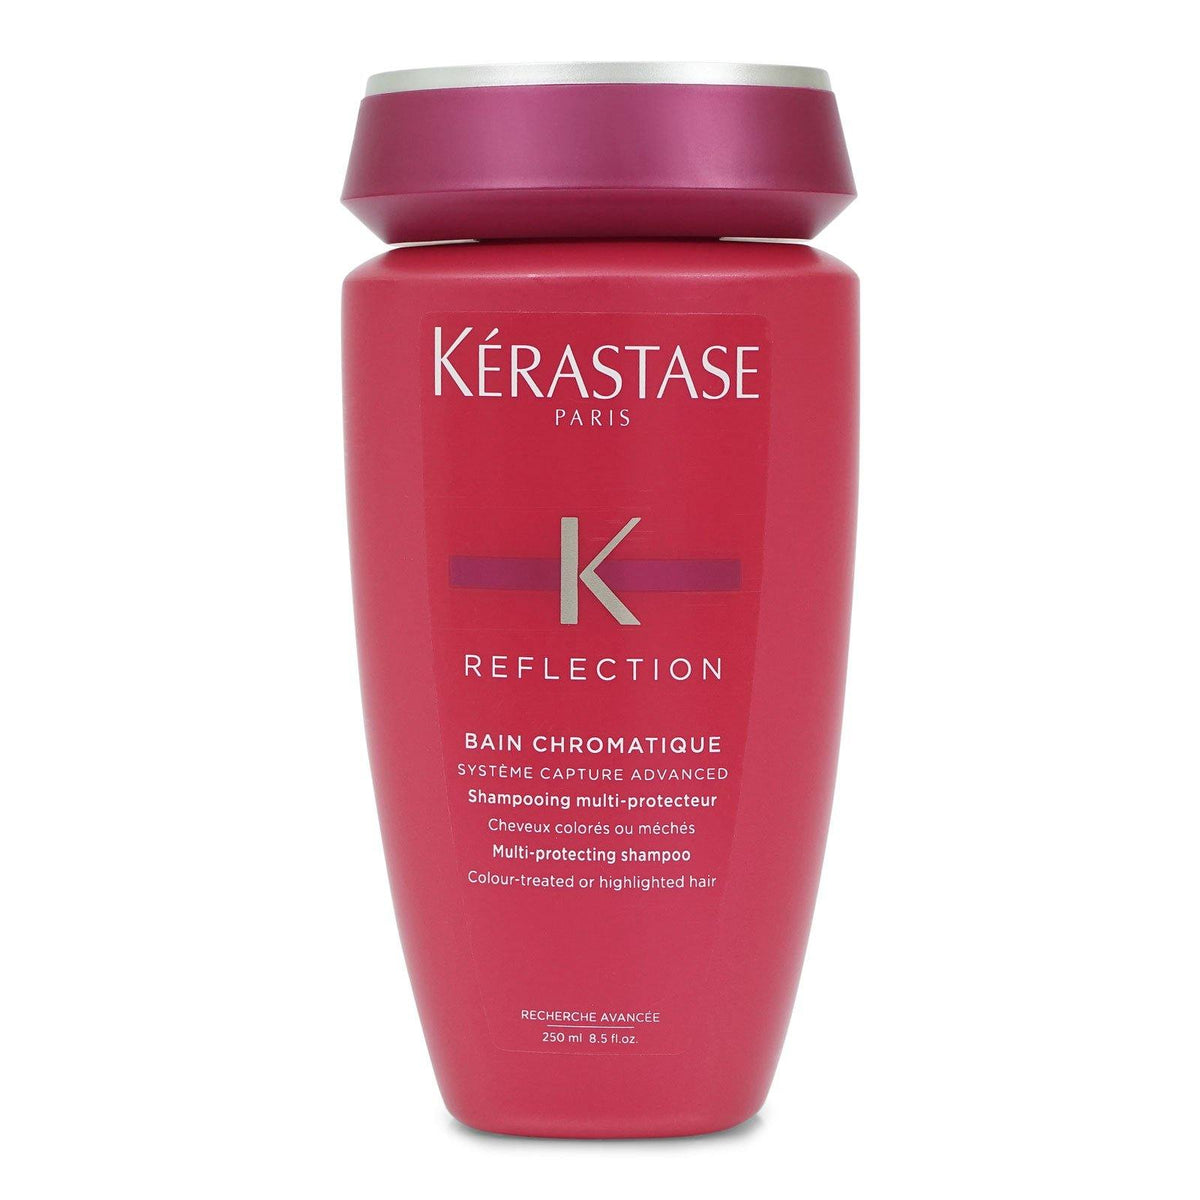 Kerastase Reflection Bain Chromatique Shampooing Multi-Protector for Color Treated Hair 250ml/8.5 fl oz (3/cs)